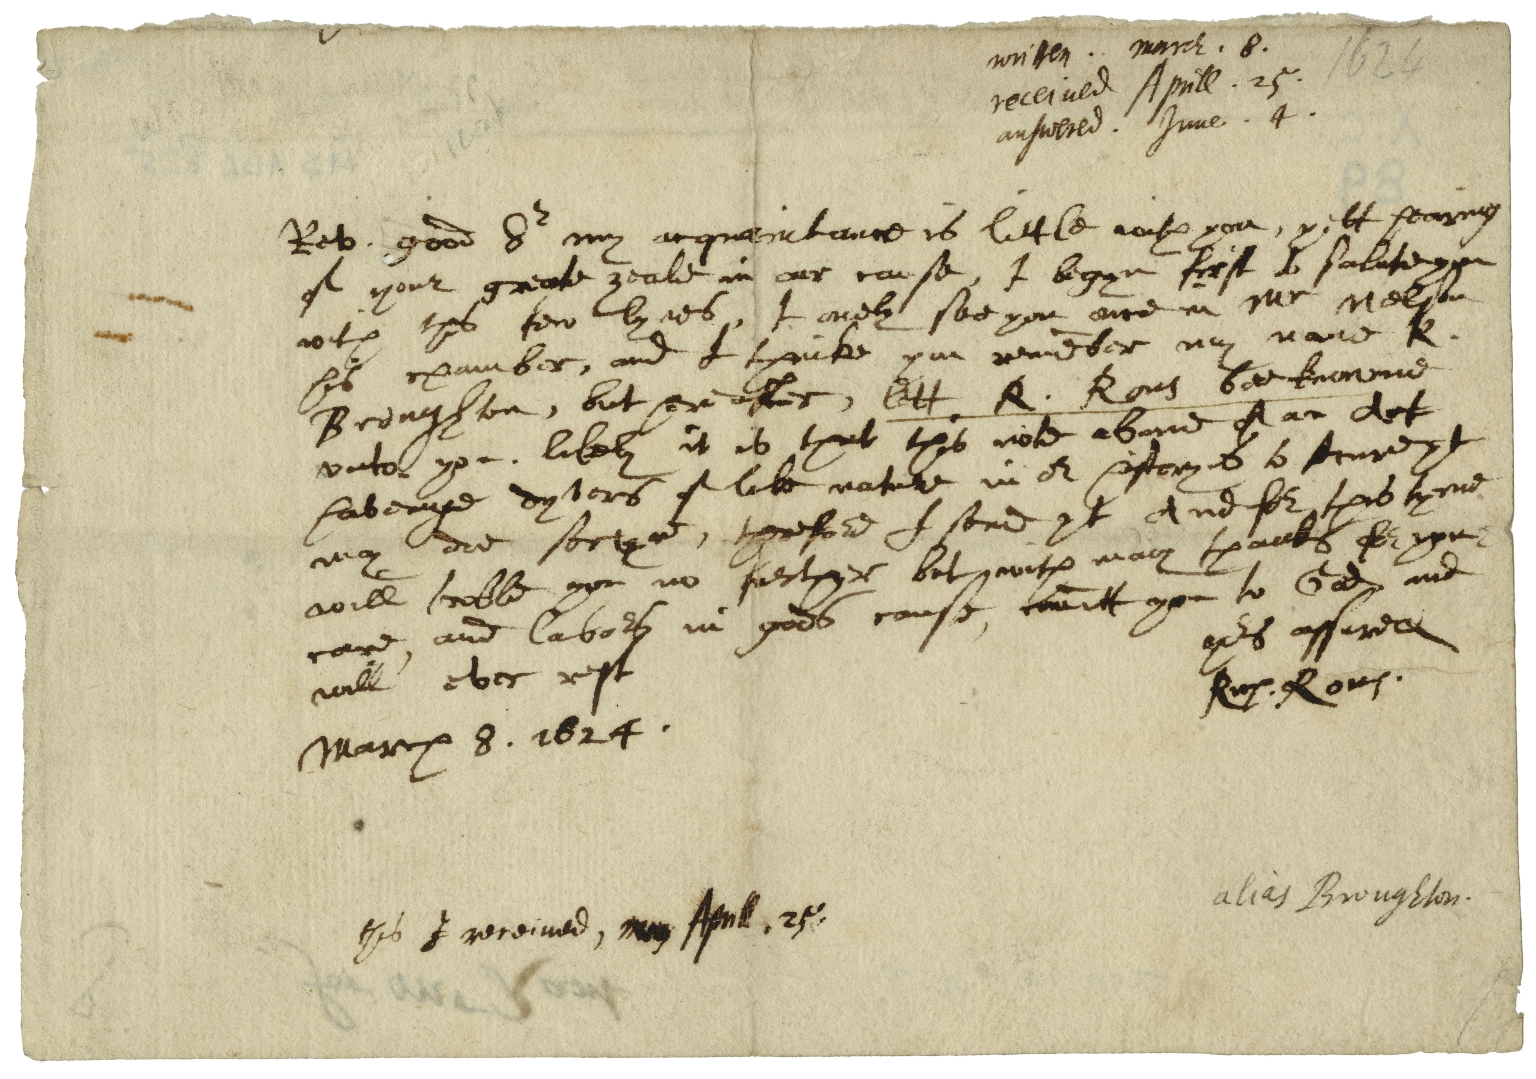 Autograph letter signed from Richard Rouse to Mr. Rant